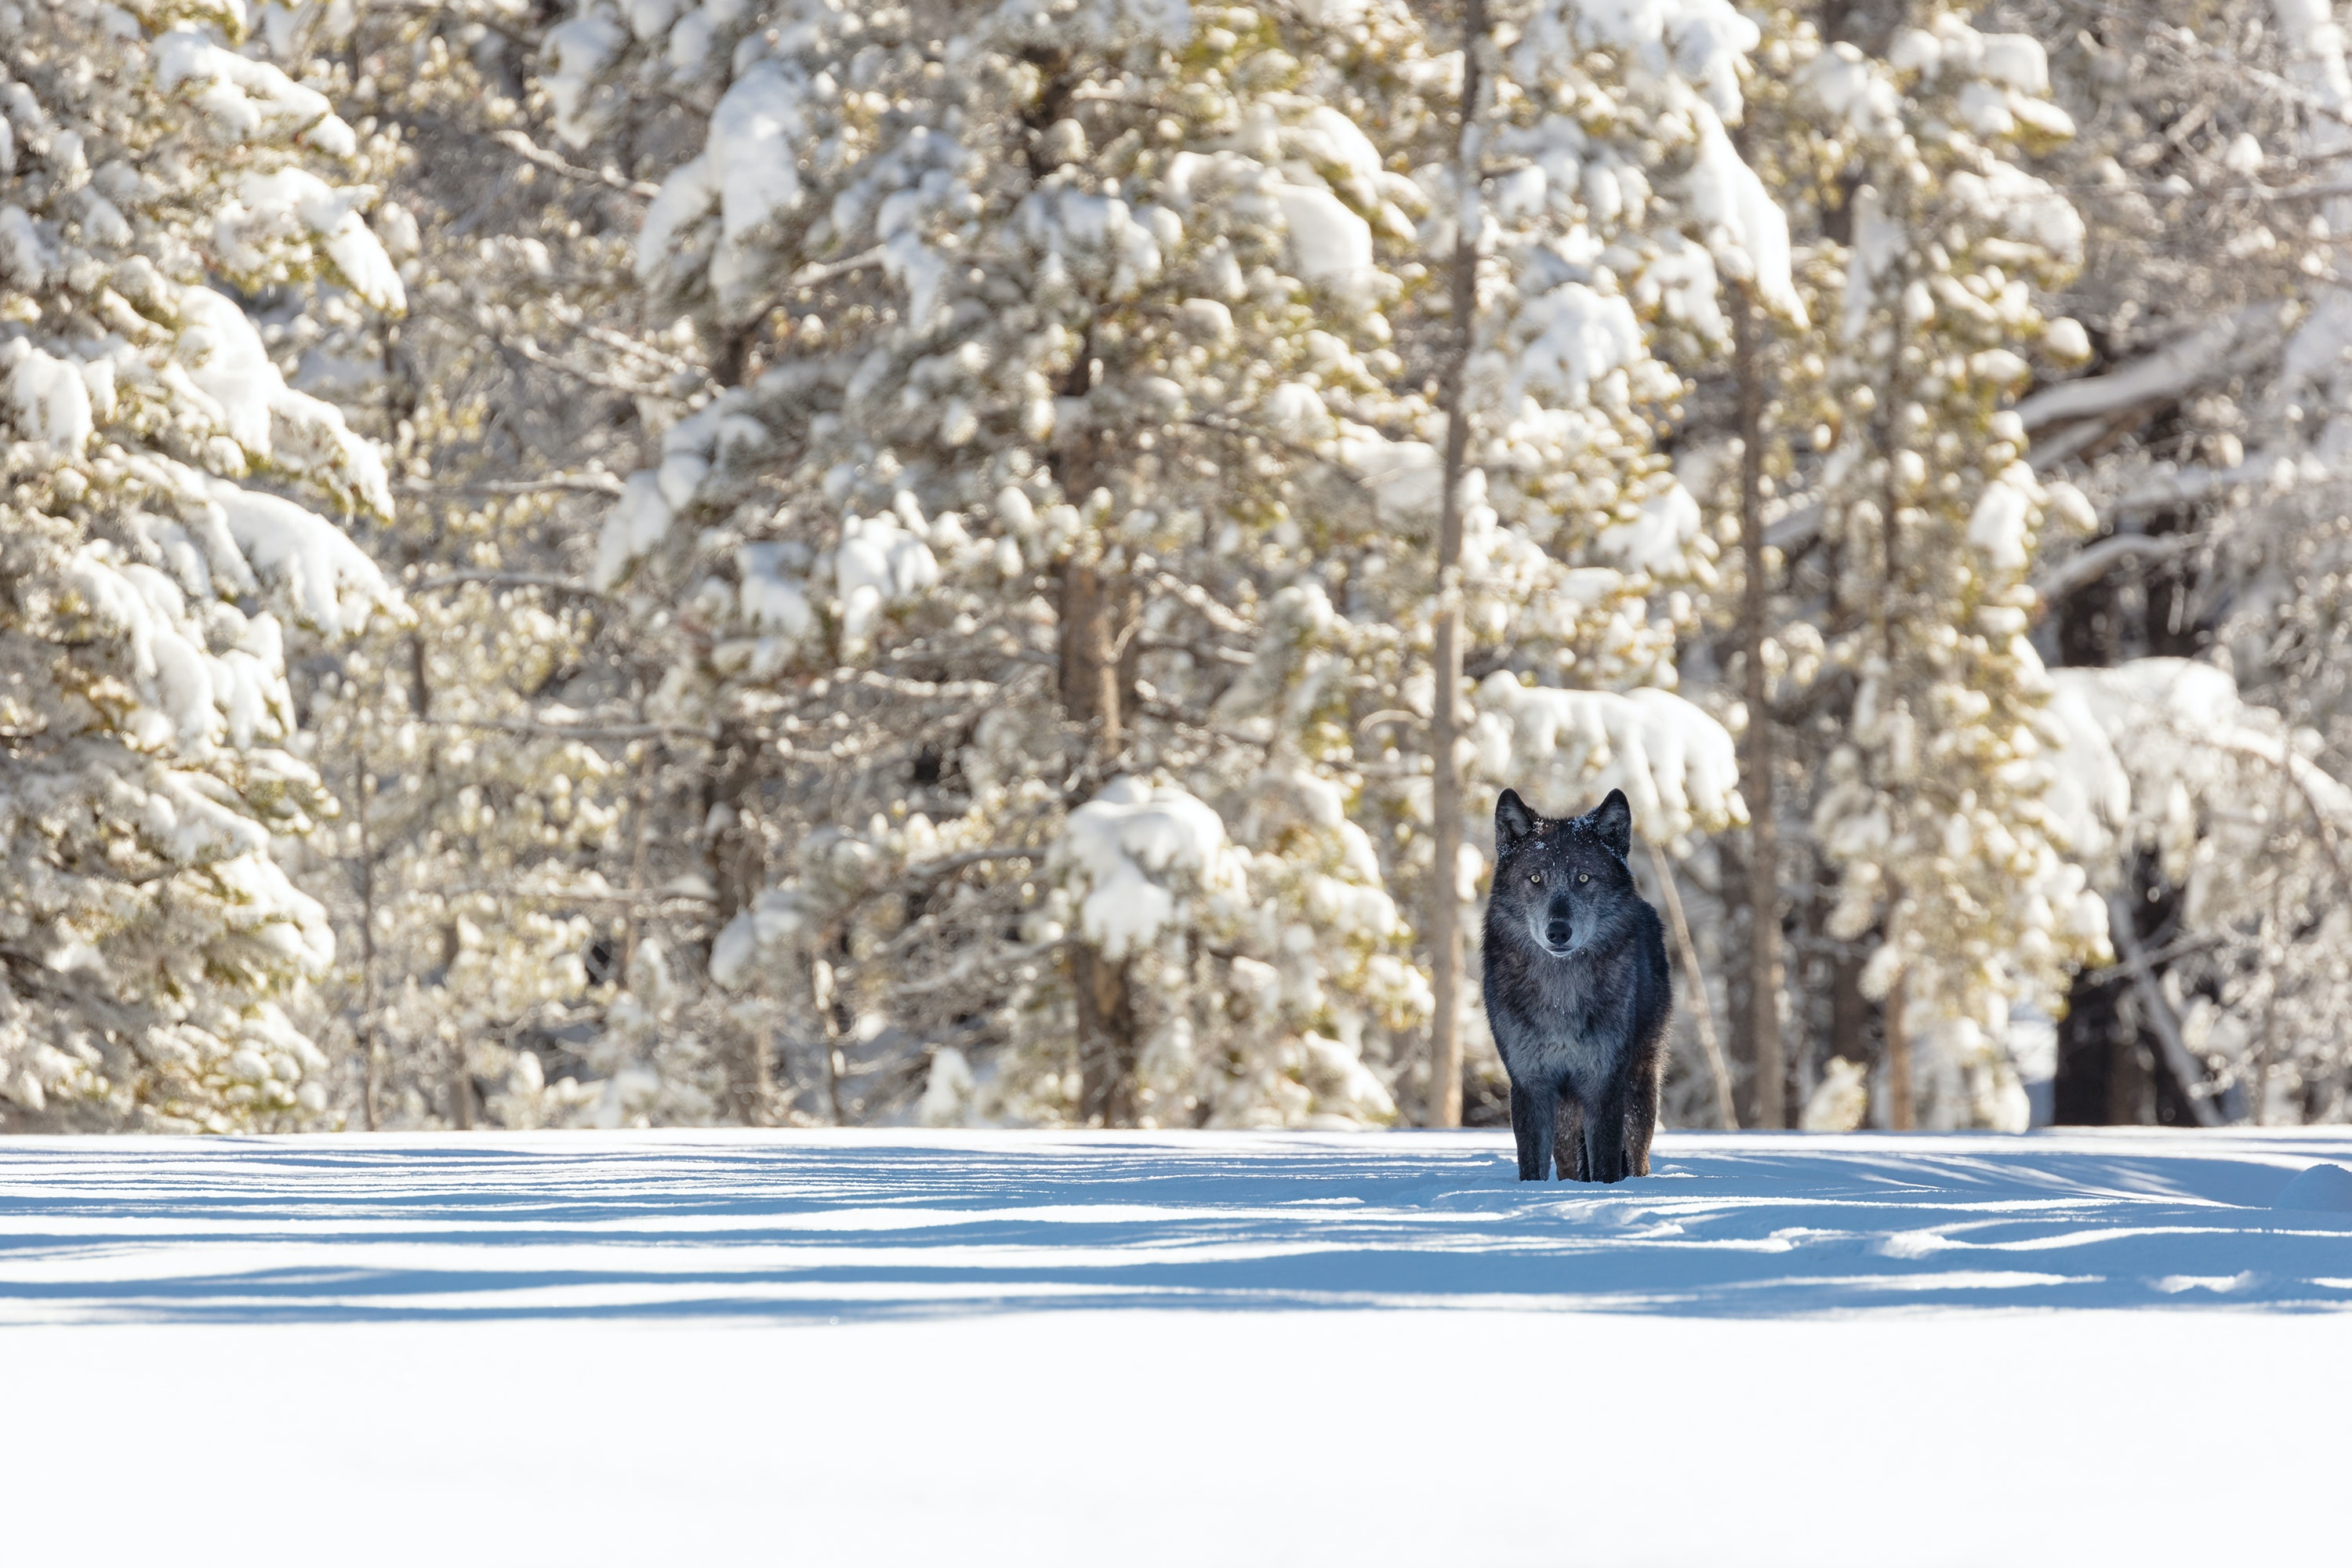 Wolves, bison, elk, and other animals come down off the mountains and into the valleys of Yellowstone during winter.